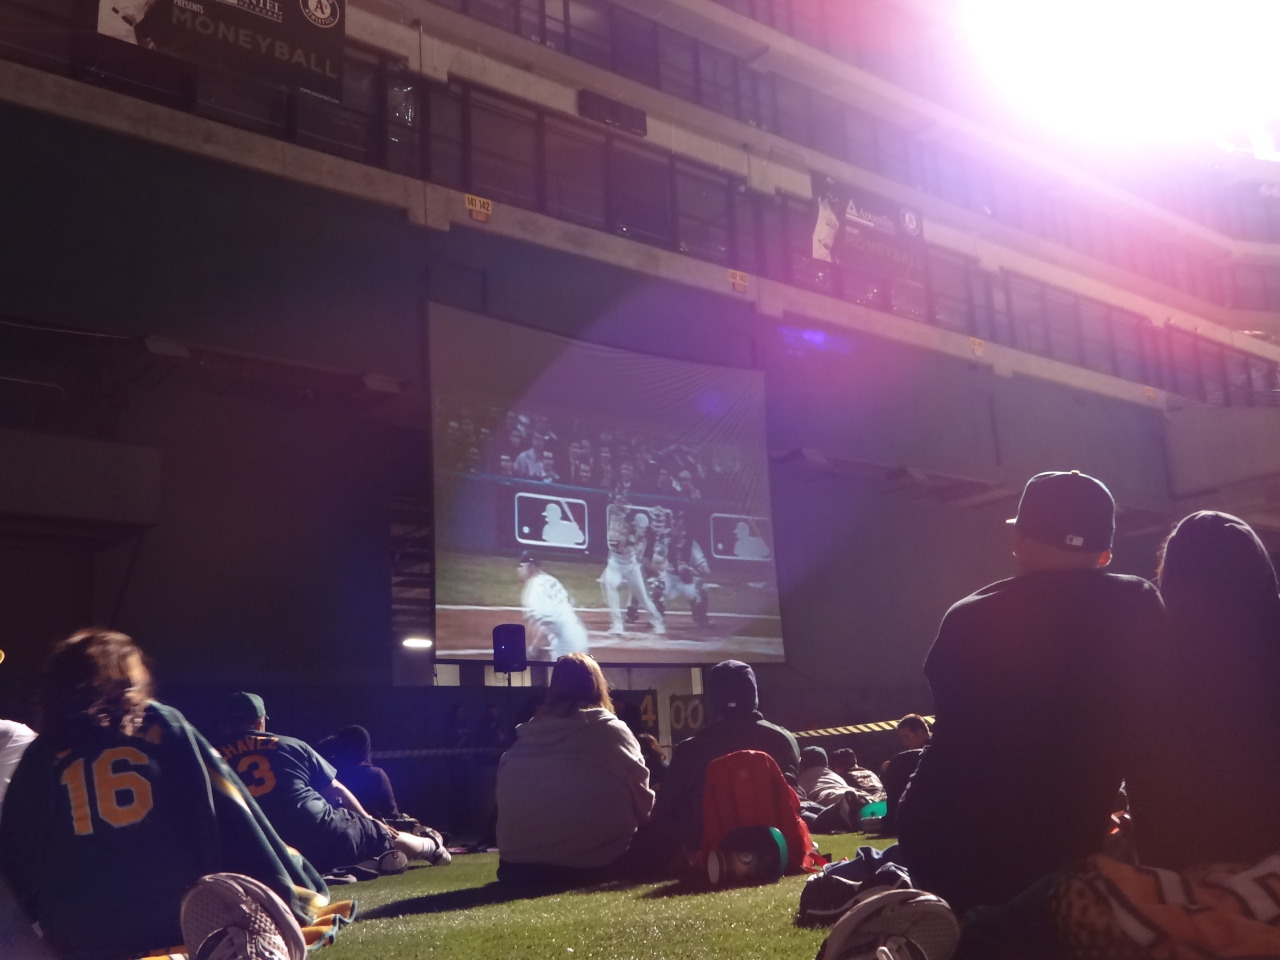 So yes, those are fans watching Moneyball where Moneyball was filmed where the defining moments of Moneyball took place.  Aug 19, 2012 Oakland Coliseum